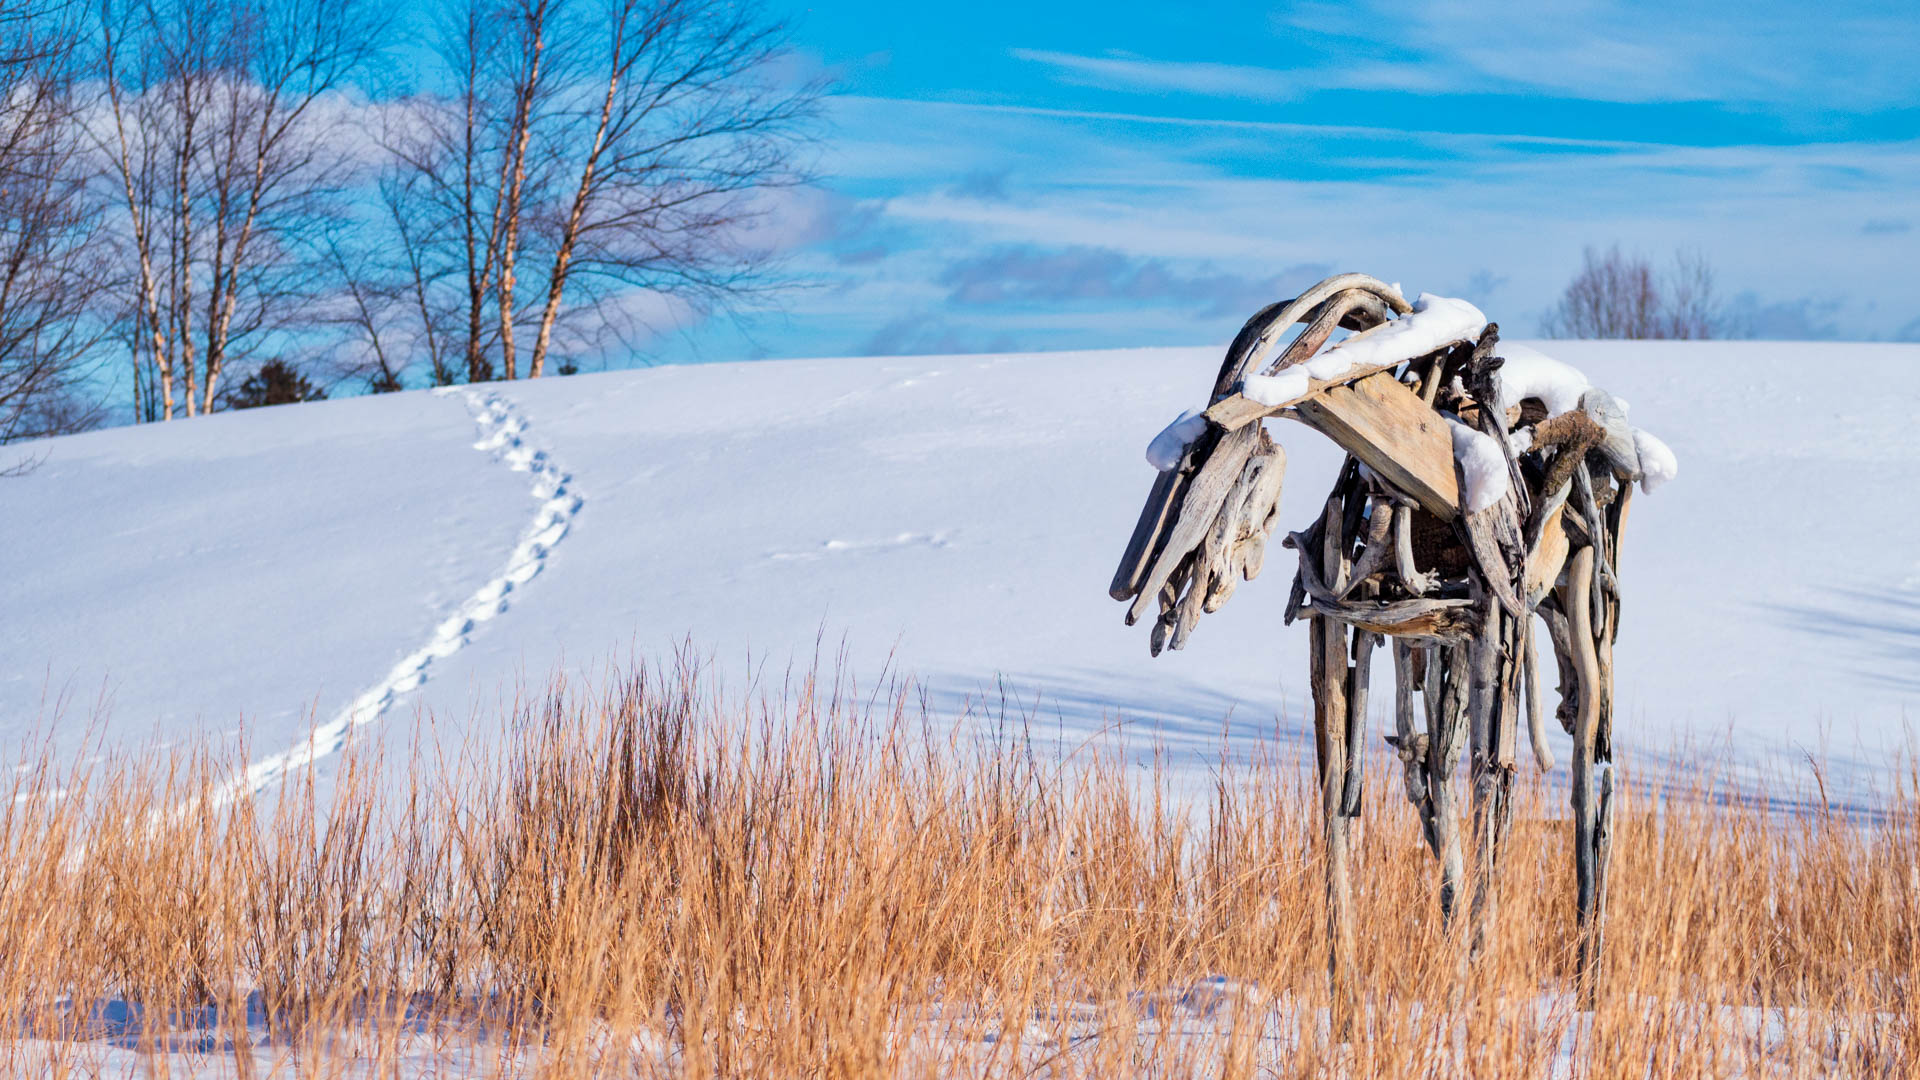 Looking at how to photograph in the snow | Photofocus